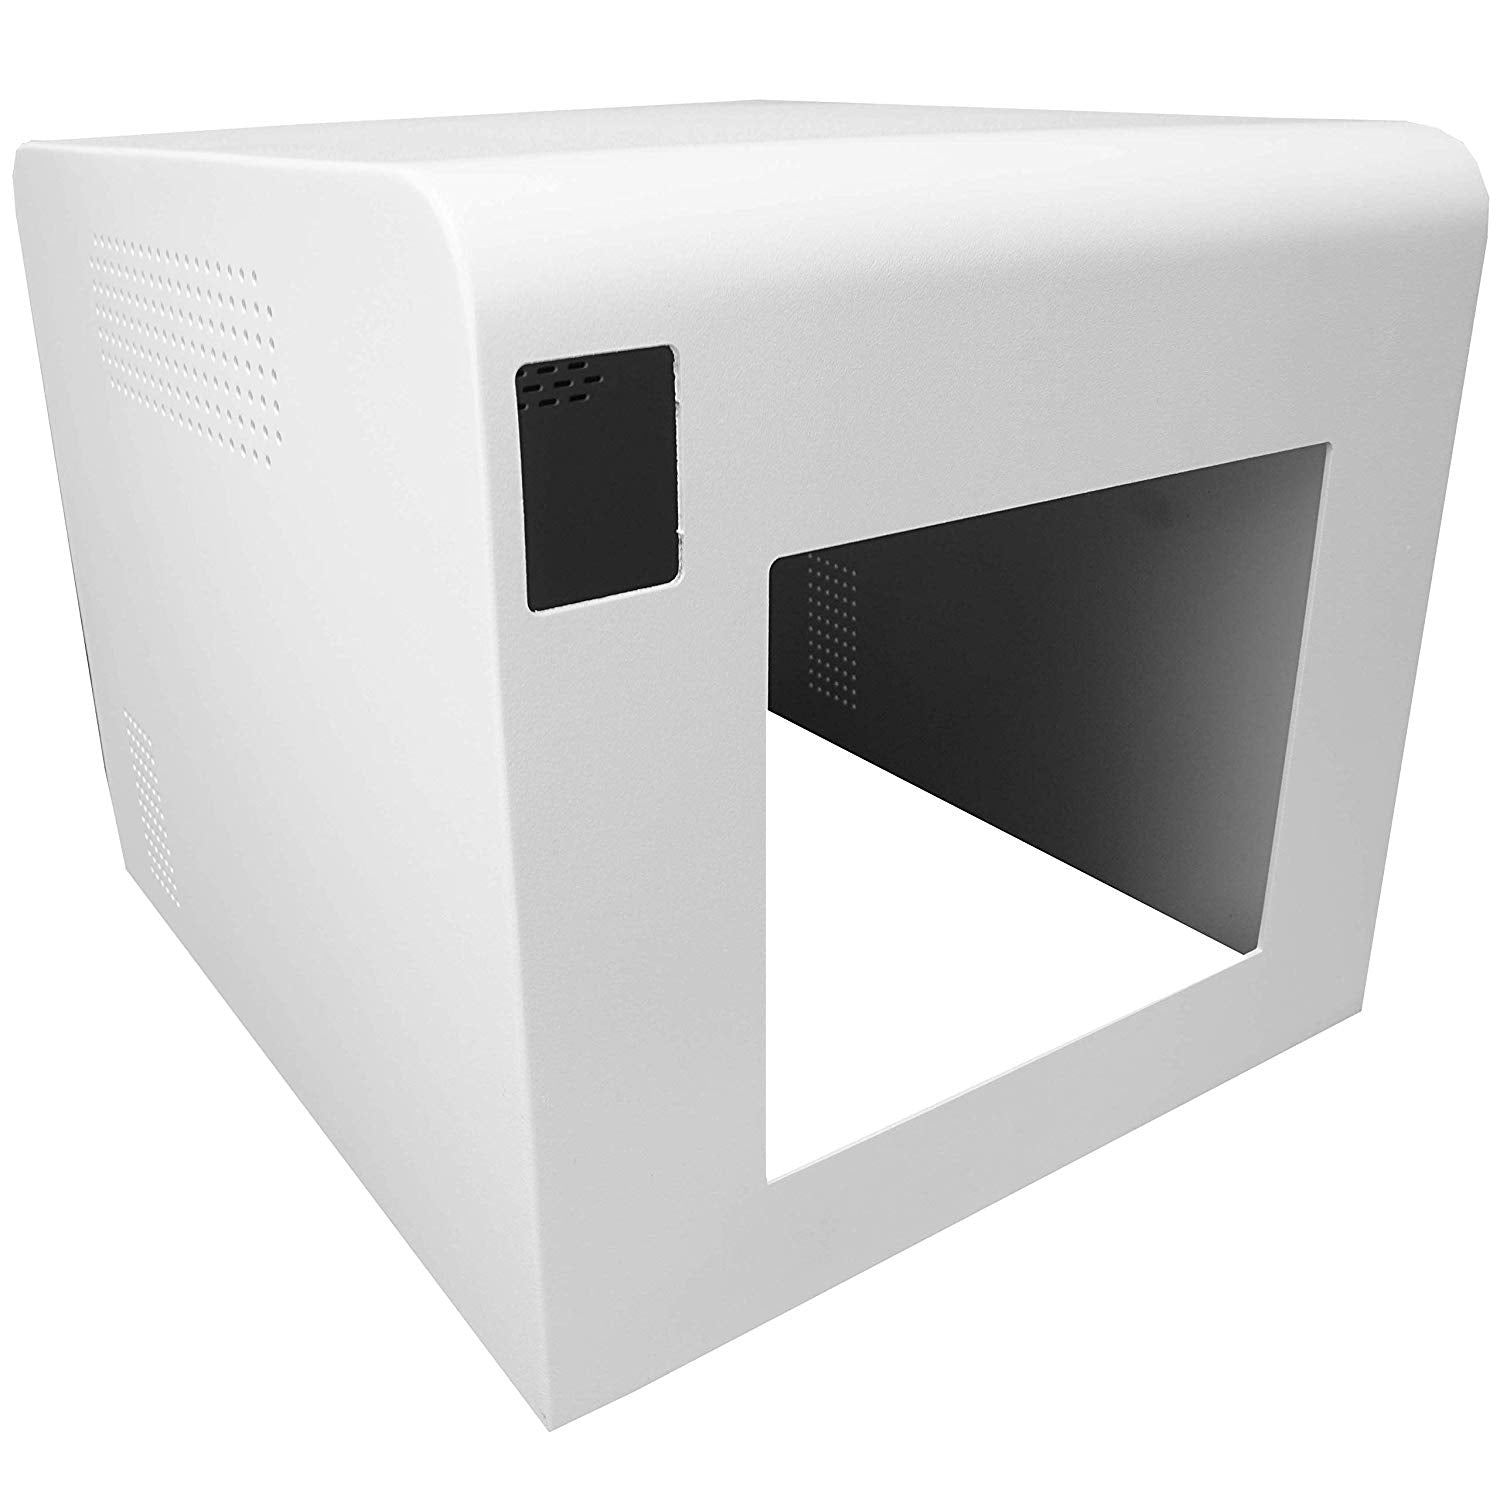 Hiti/RX1 Printer Cover White